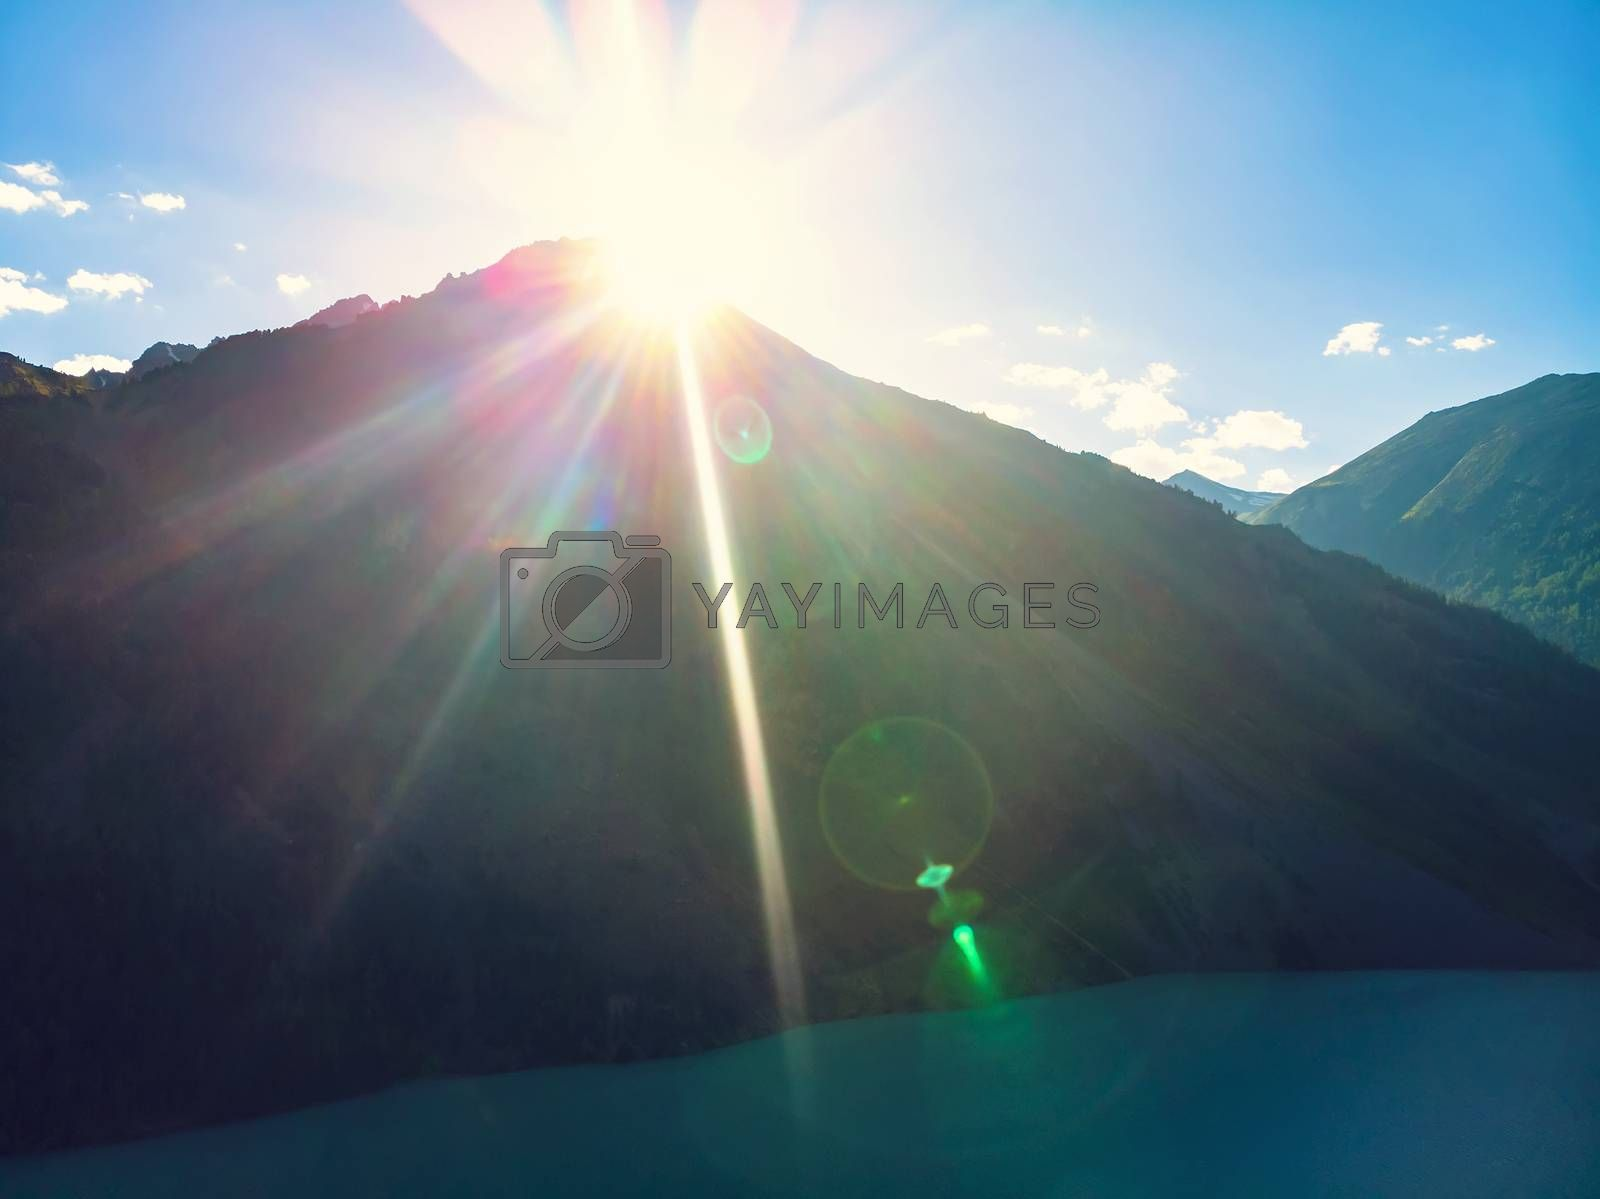 Royalty free image of Bright orange sun rays over mountain lake, Sunrise over the mountain. Bright sun rays make their way through the mountain top. by diy13